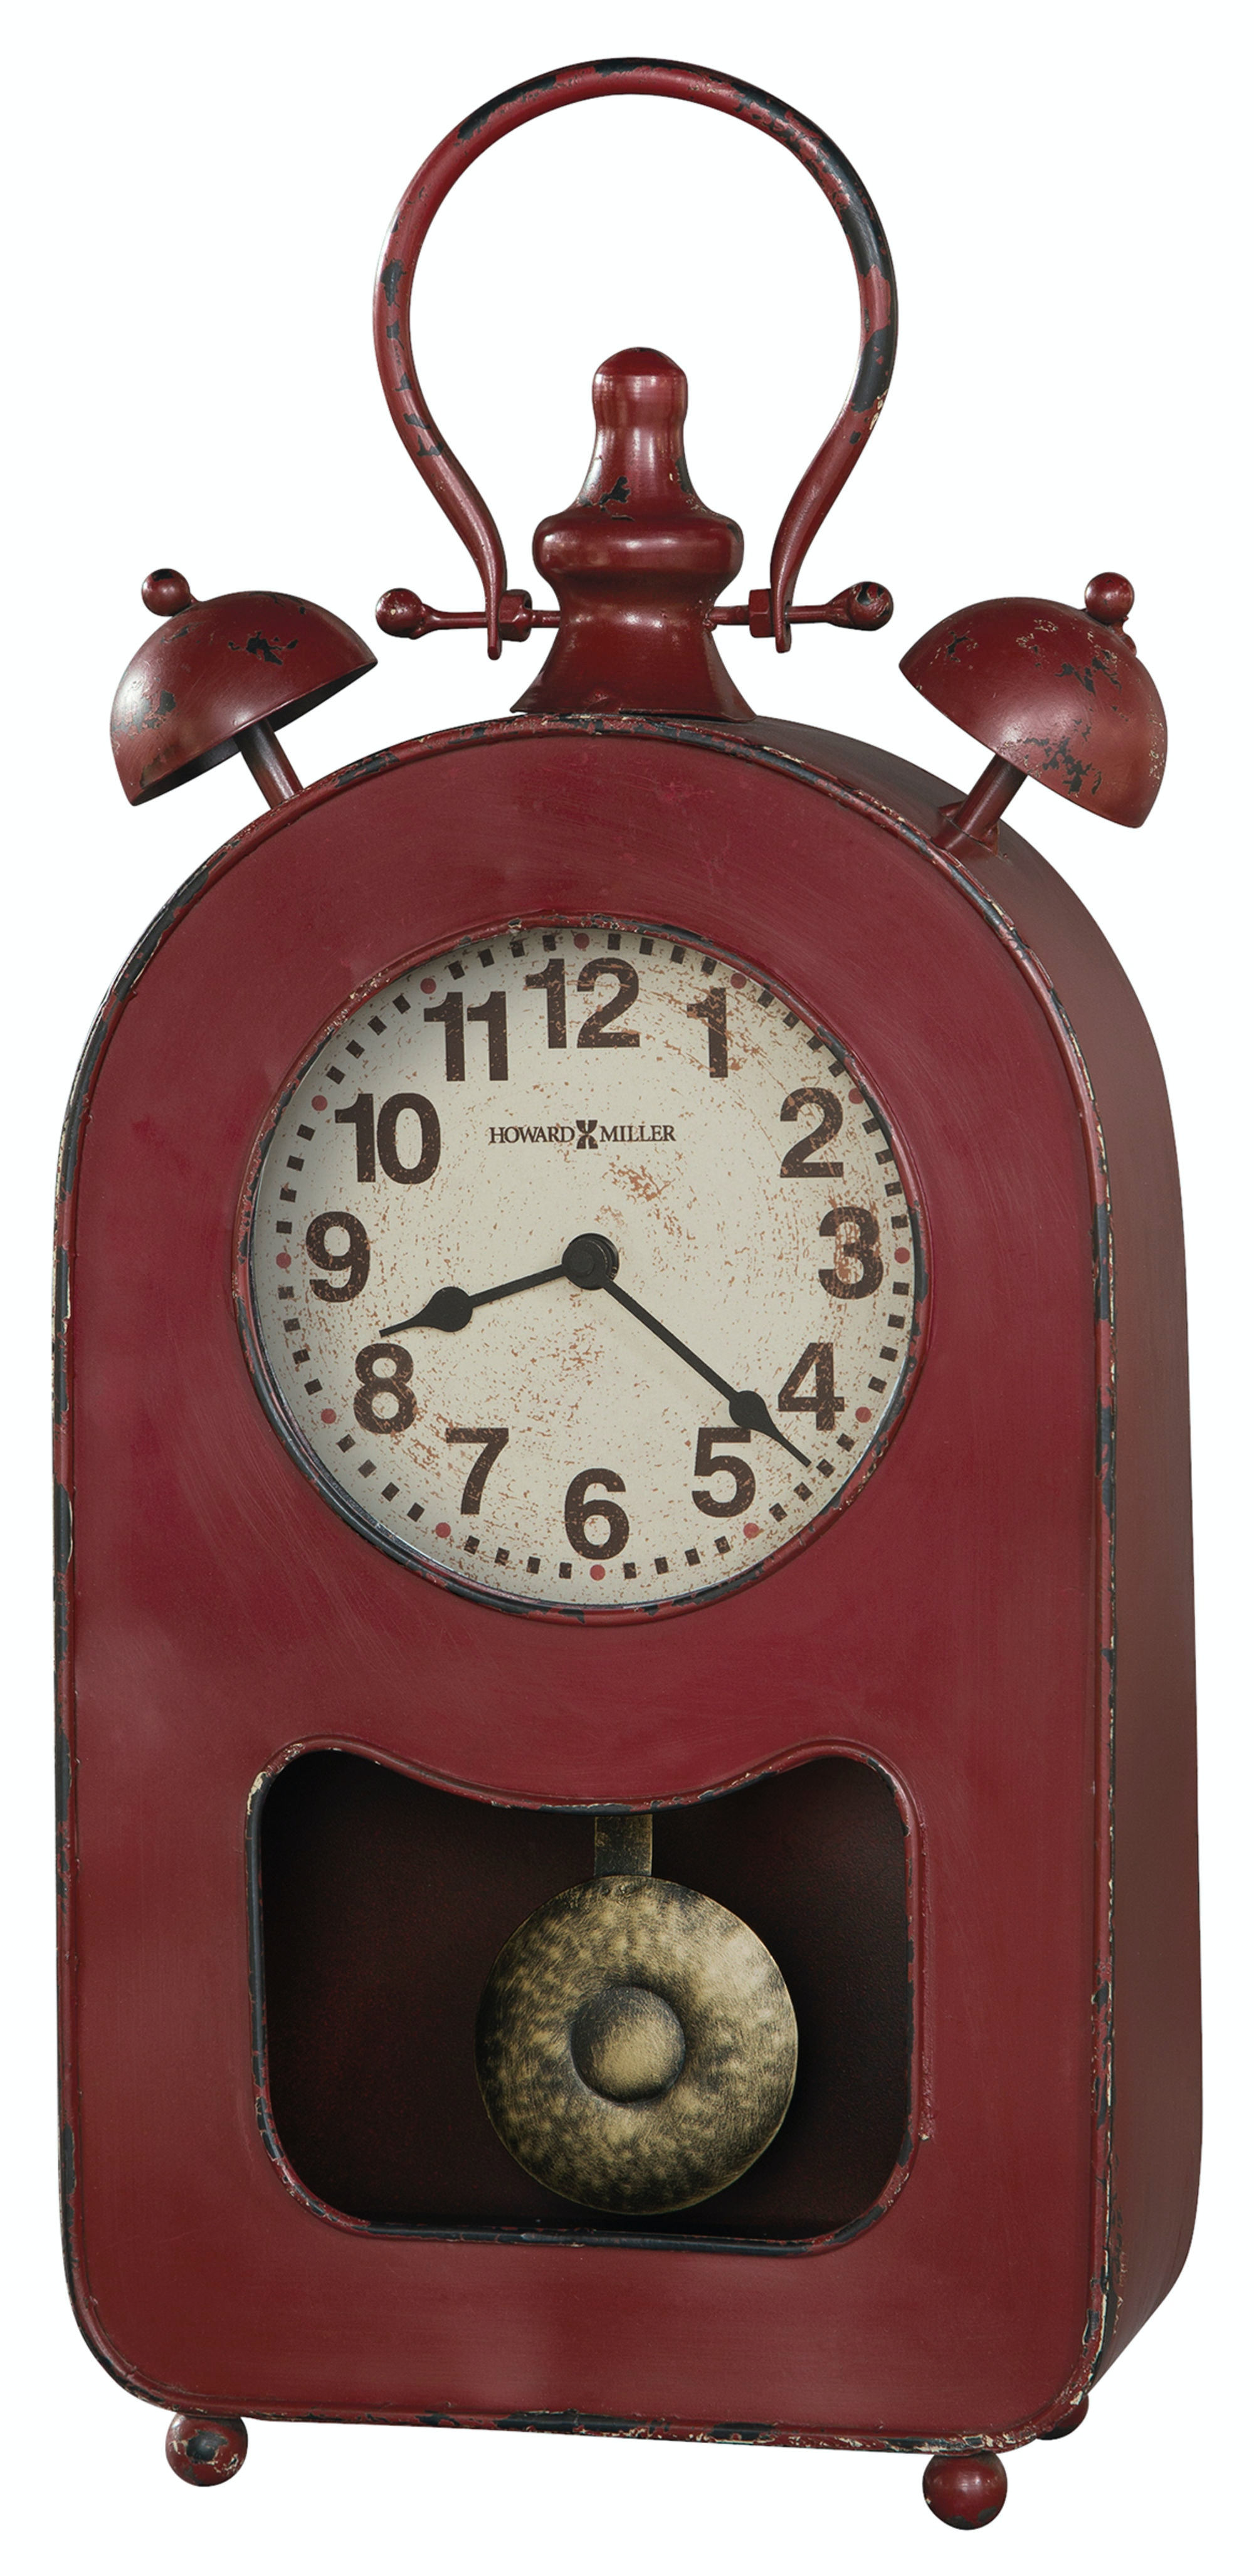 Please Allow An Appropriate Amount Of Time For A Response Depending On The  Time Of Day. Mantel Clock Mantel Clock 635206 Howard Miller